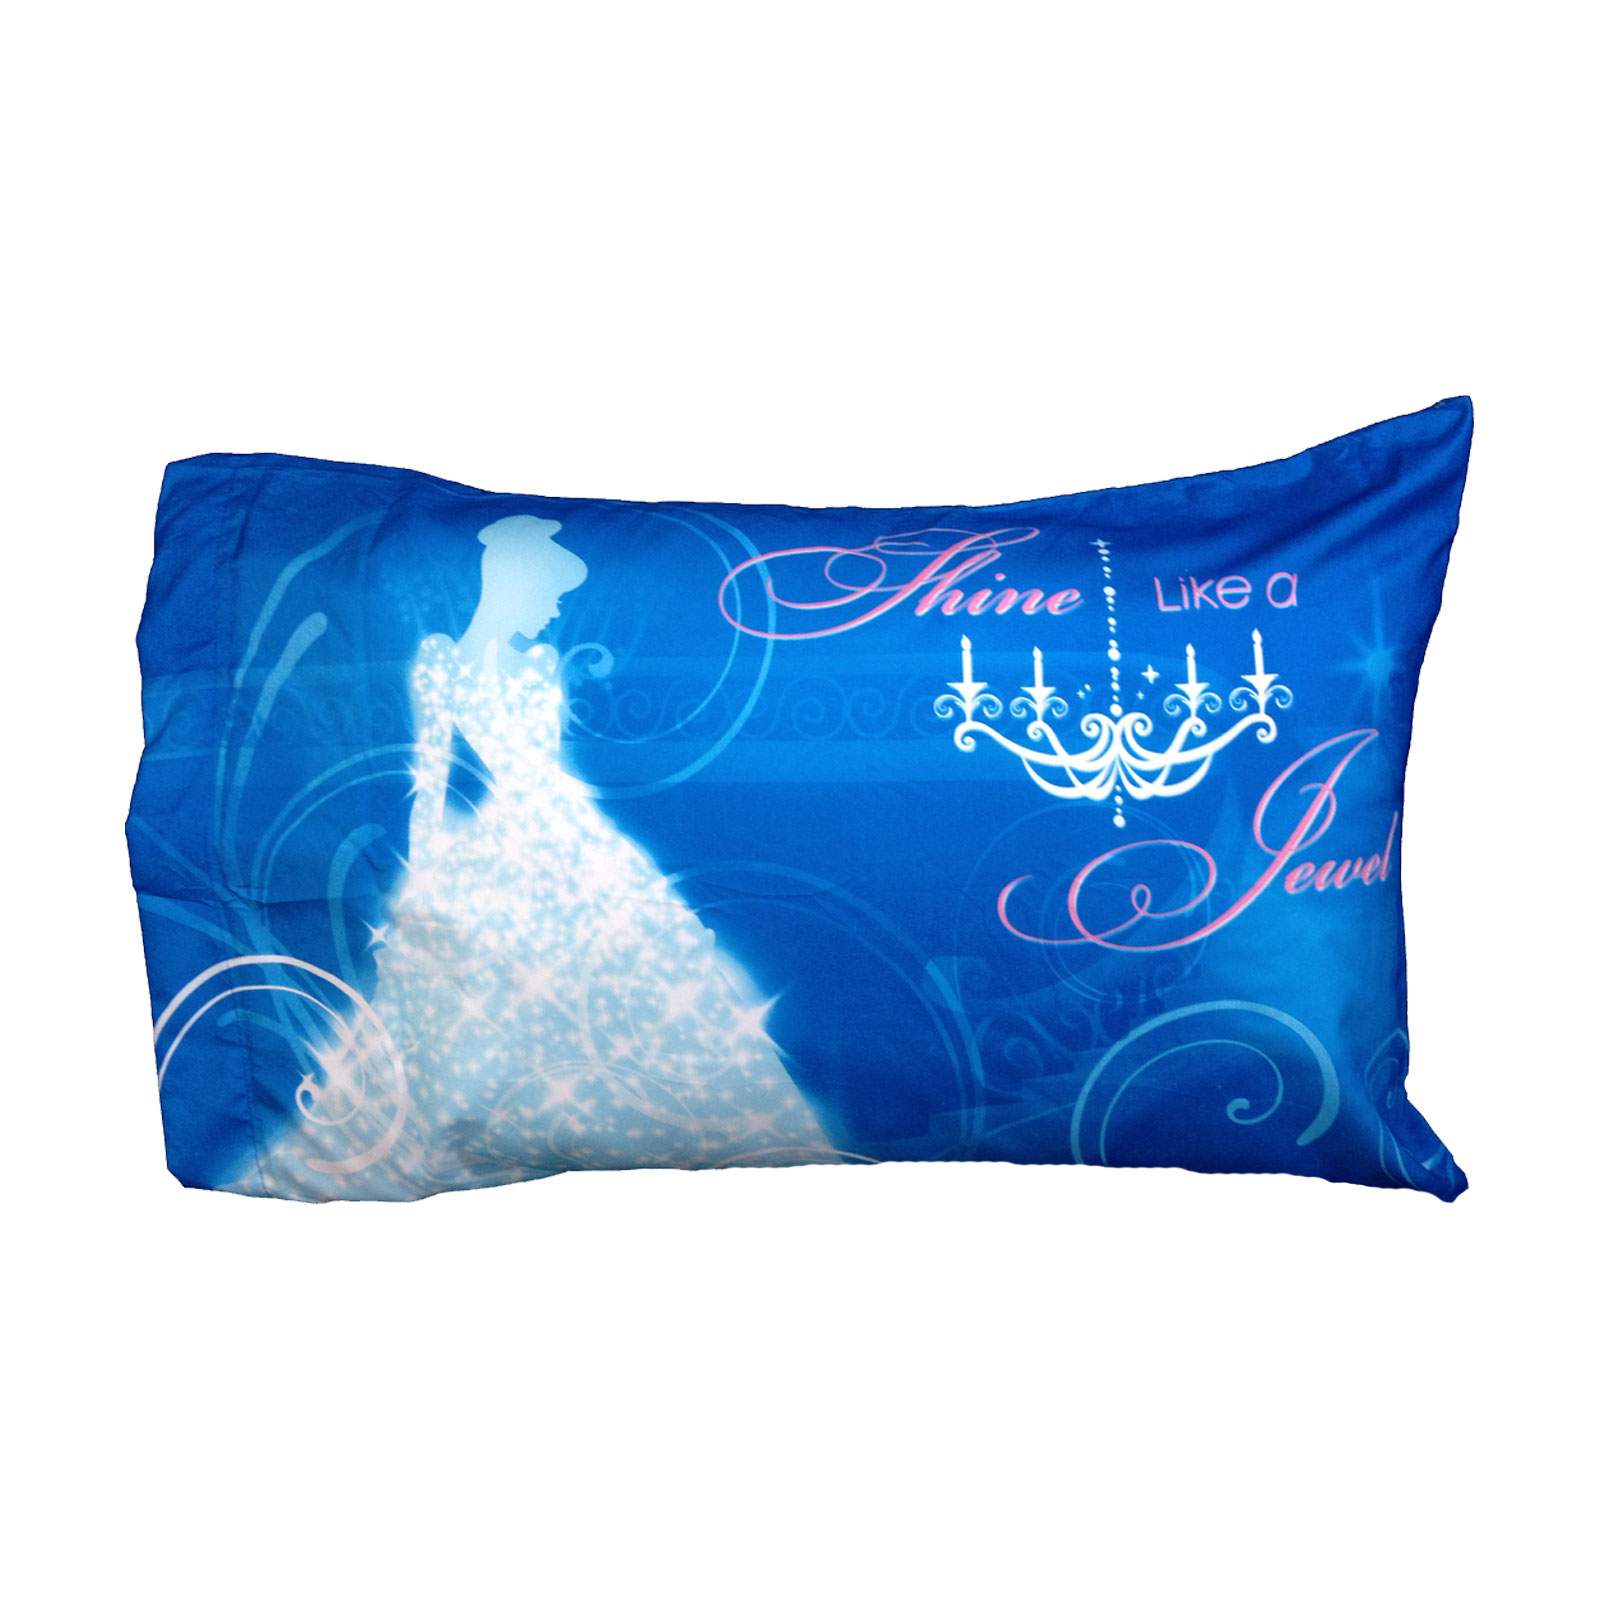 2pc Disney Princess Cinderella Pillowcase Set